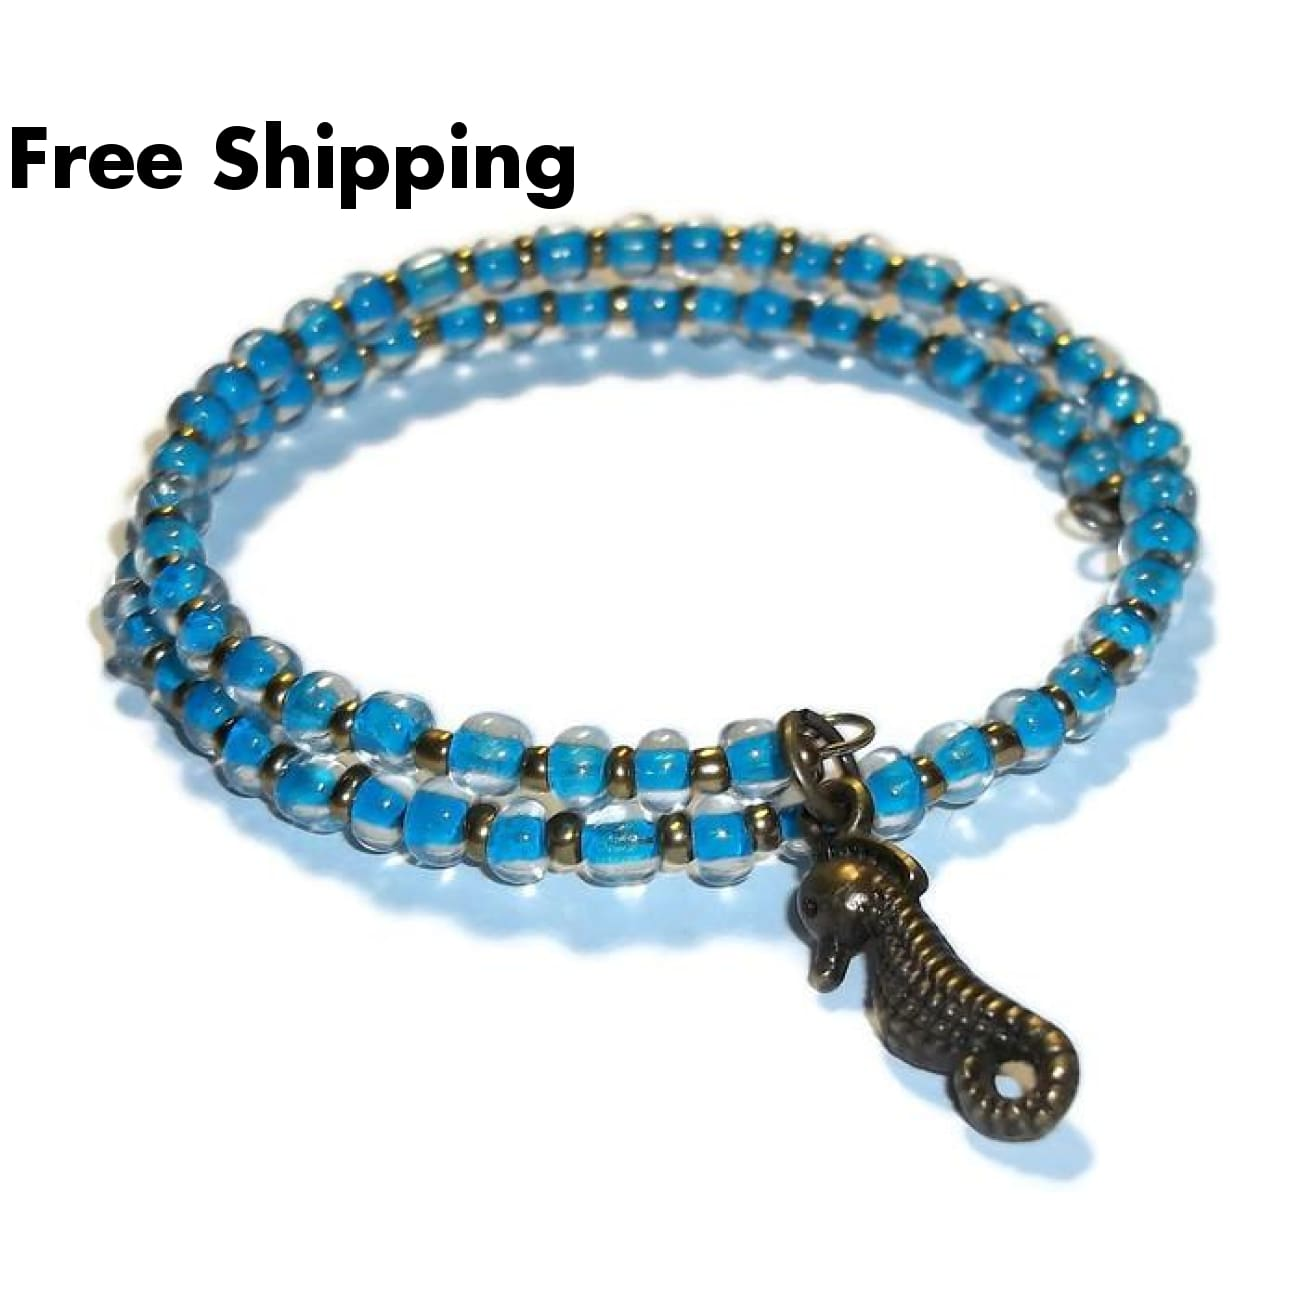 Seahorse Neon Blue Glass Bronze Artisan Crafted Stackables Adjustable Bracelet (Xs-S) - New Arrival